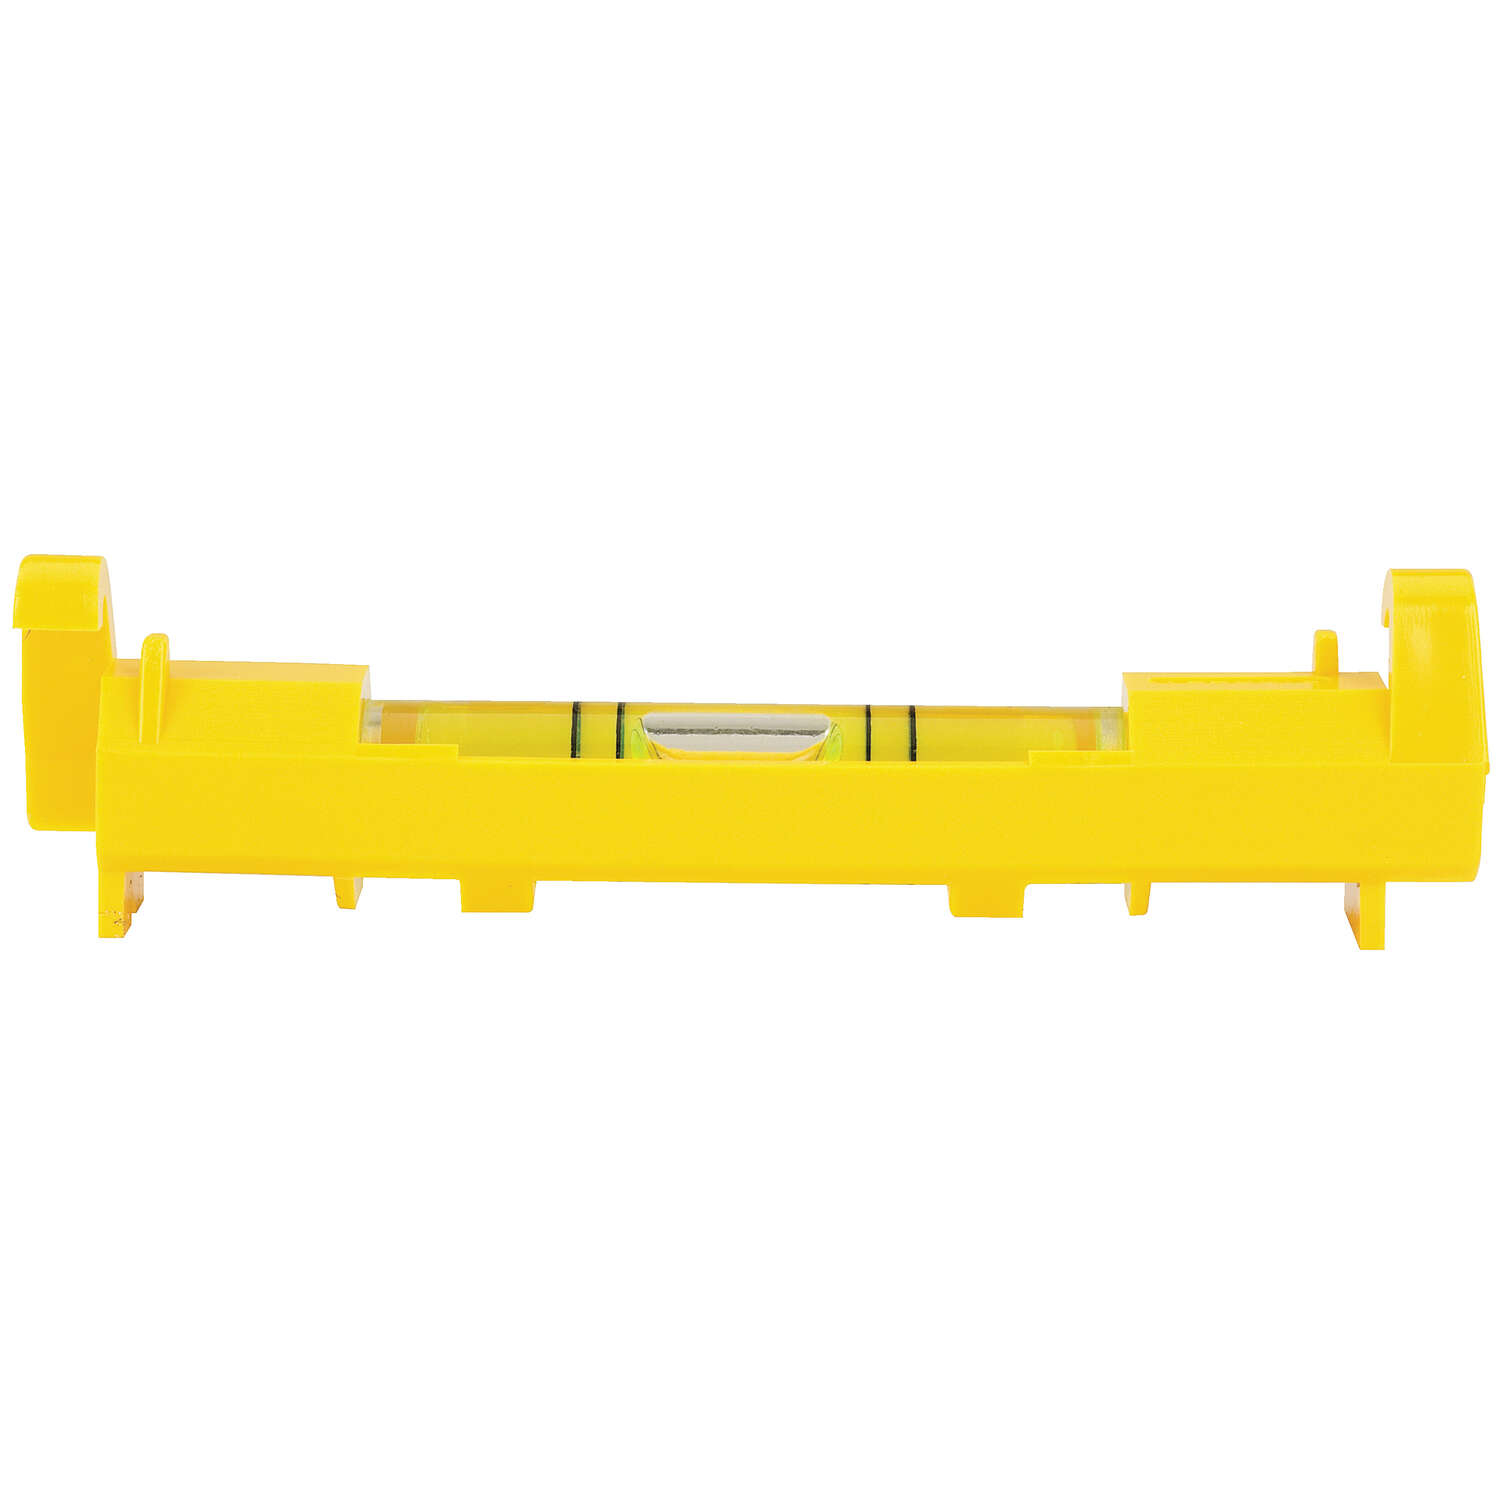 Stanley  3 in. ABS  Line  Level  1 vial